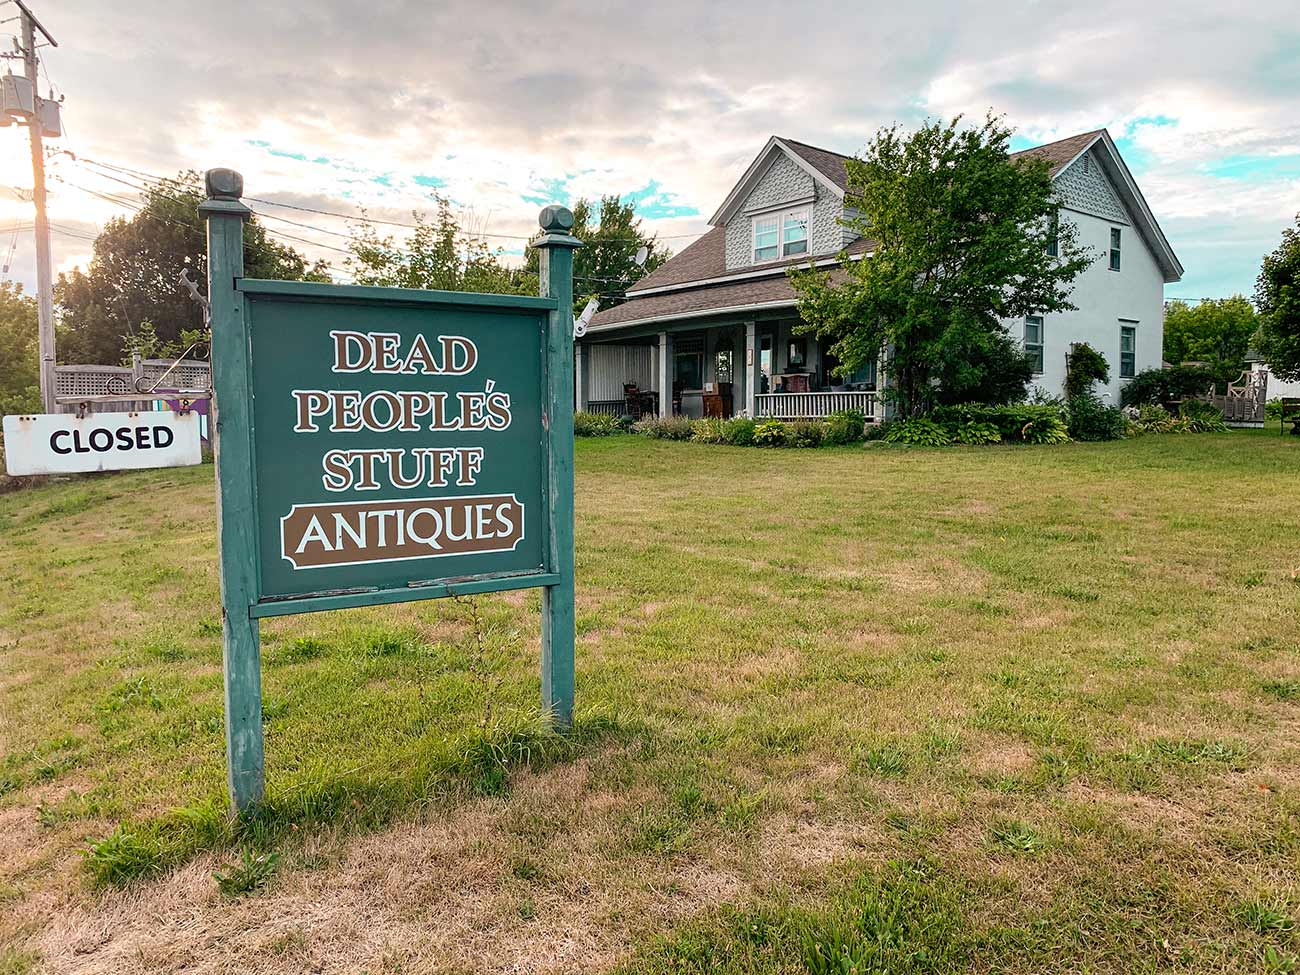 things to do in Prince Edward County - antique shopping at Dead People's Stuff